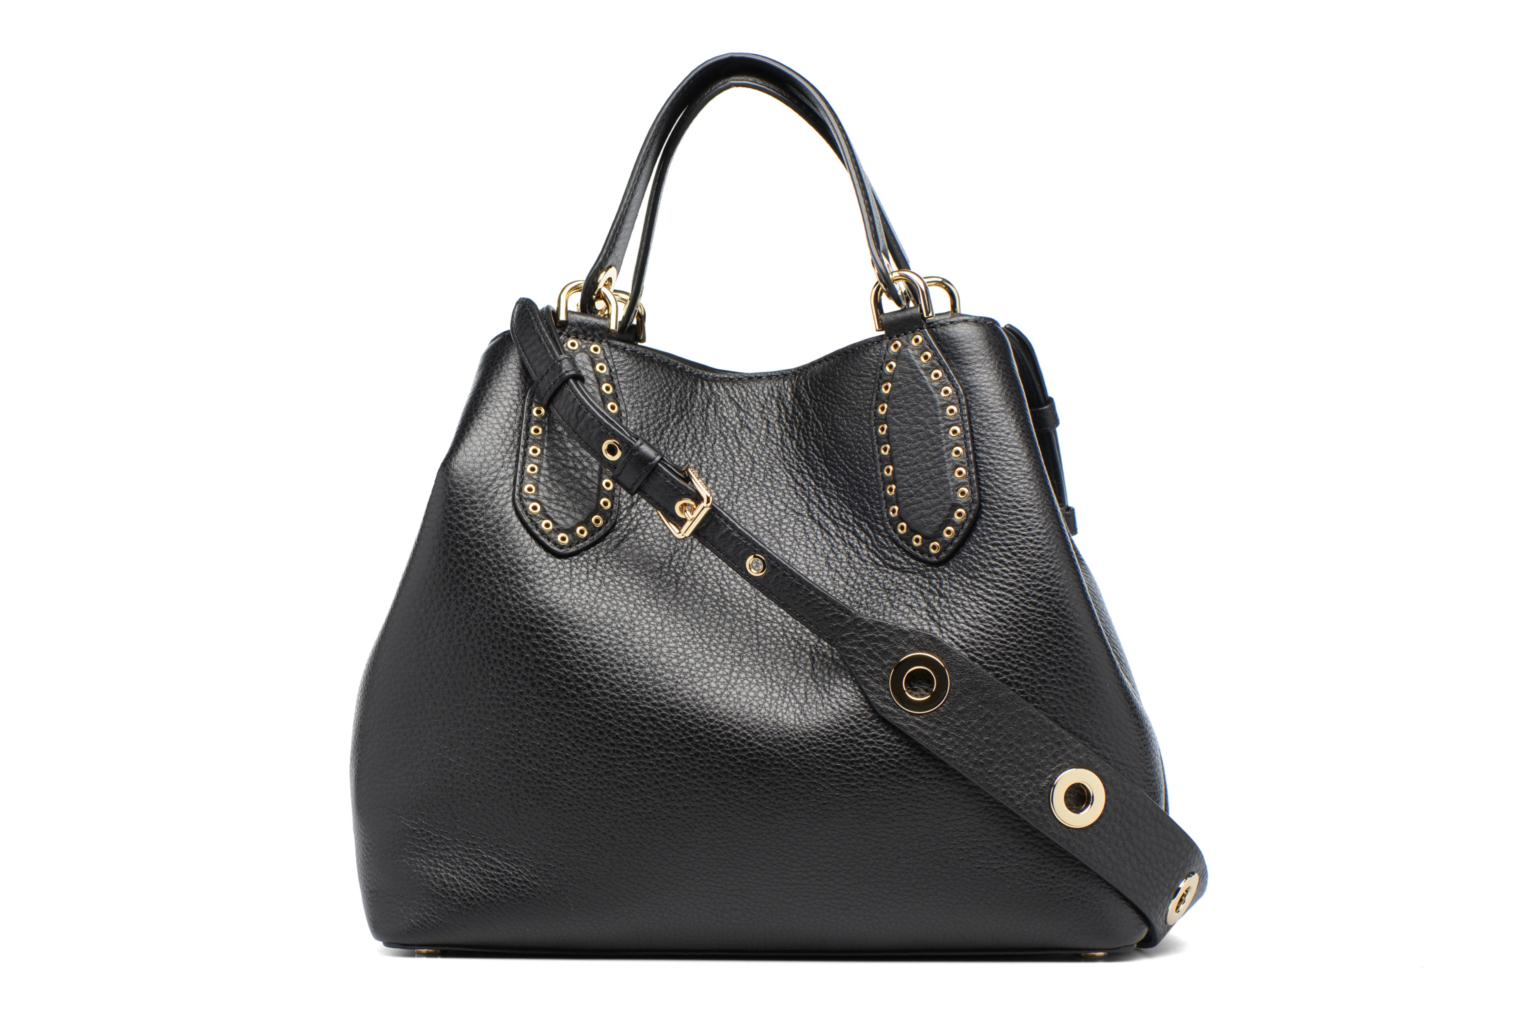 Brooklyn LG Grab Bag 001 black